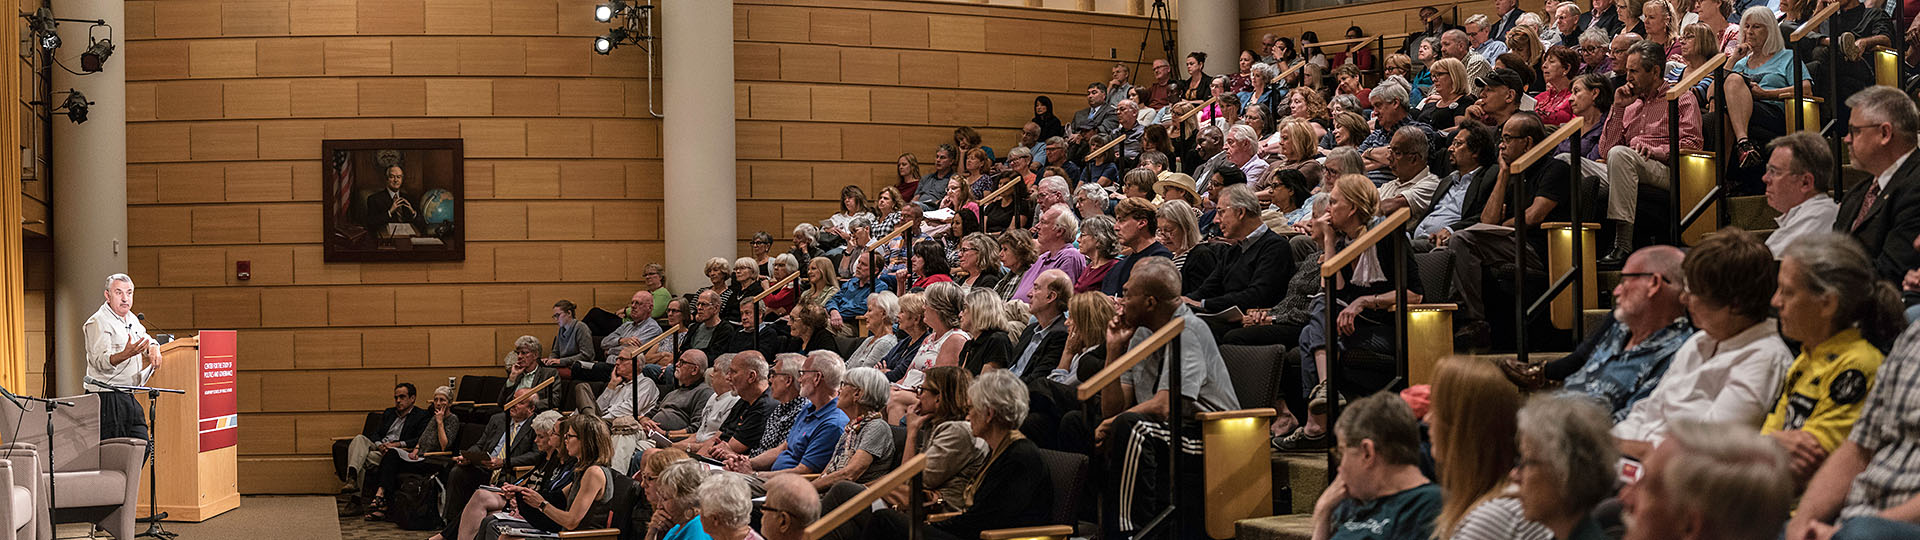 Wide shot of a large audience in the Humphrey School's auditorium